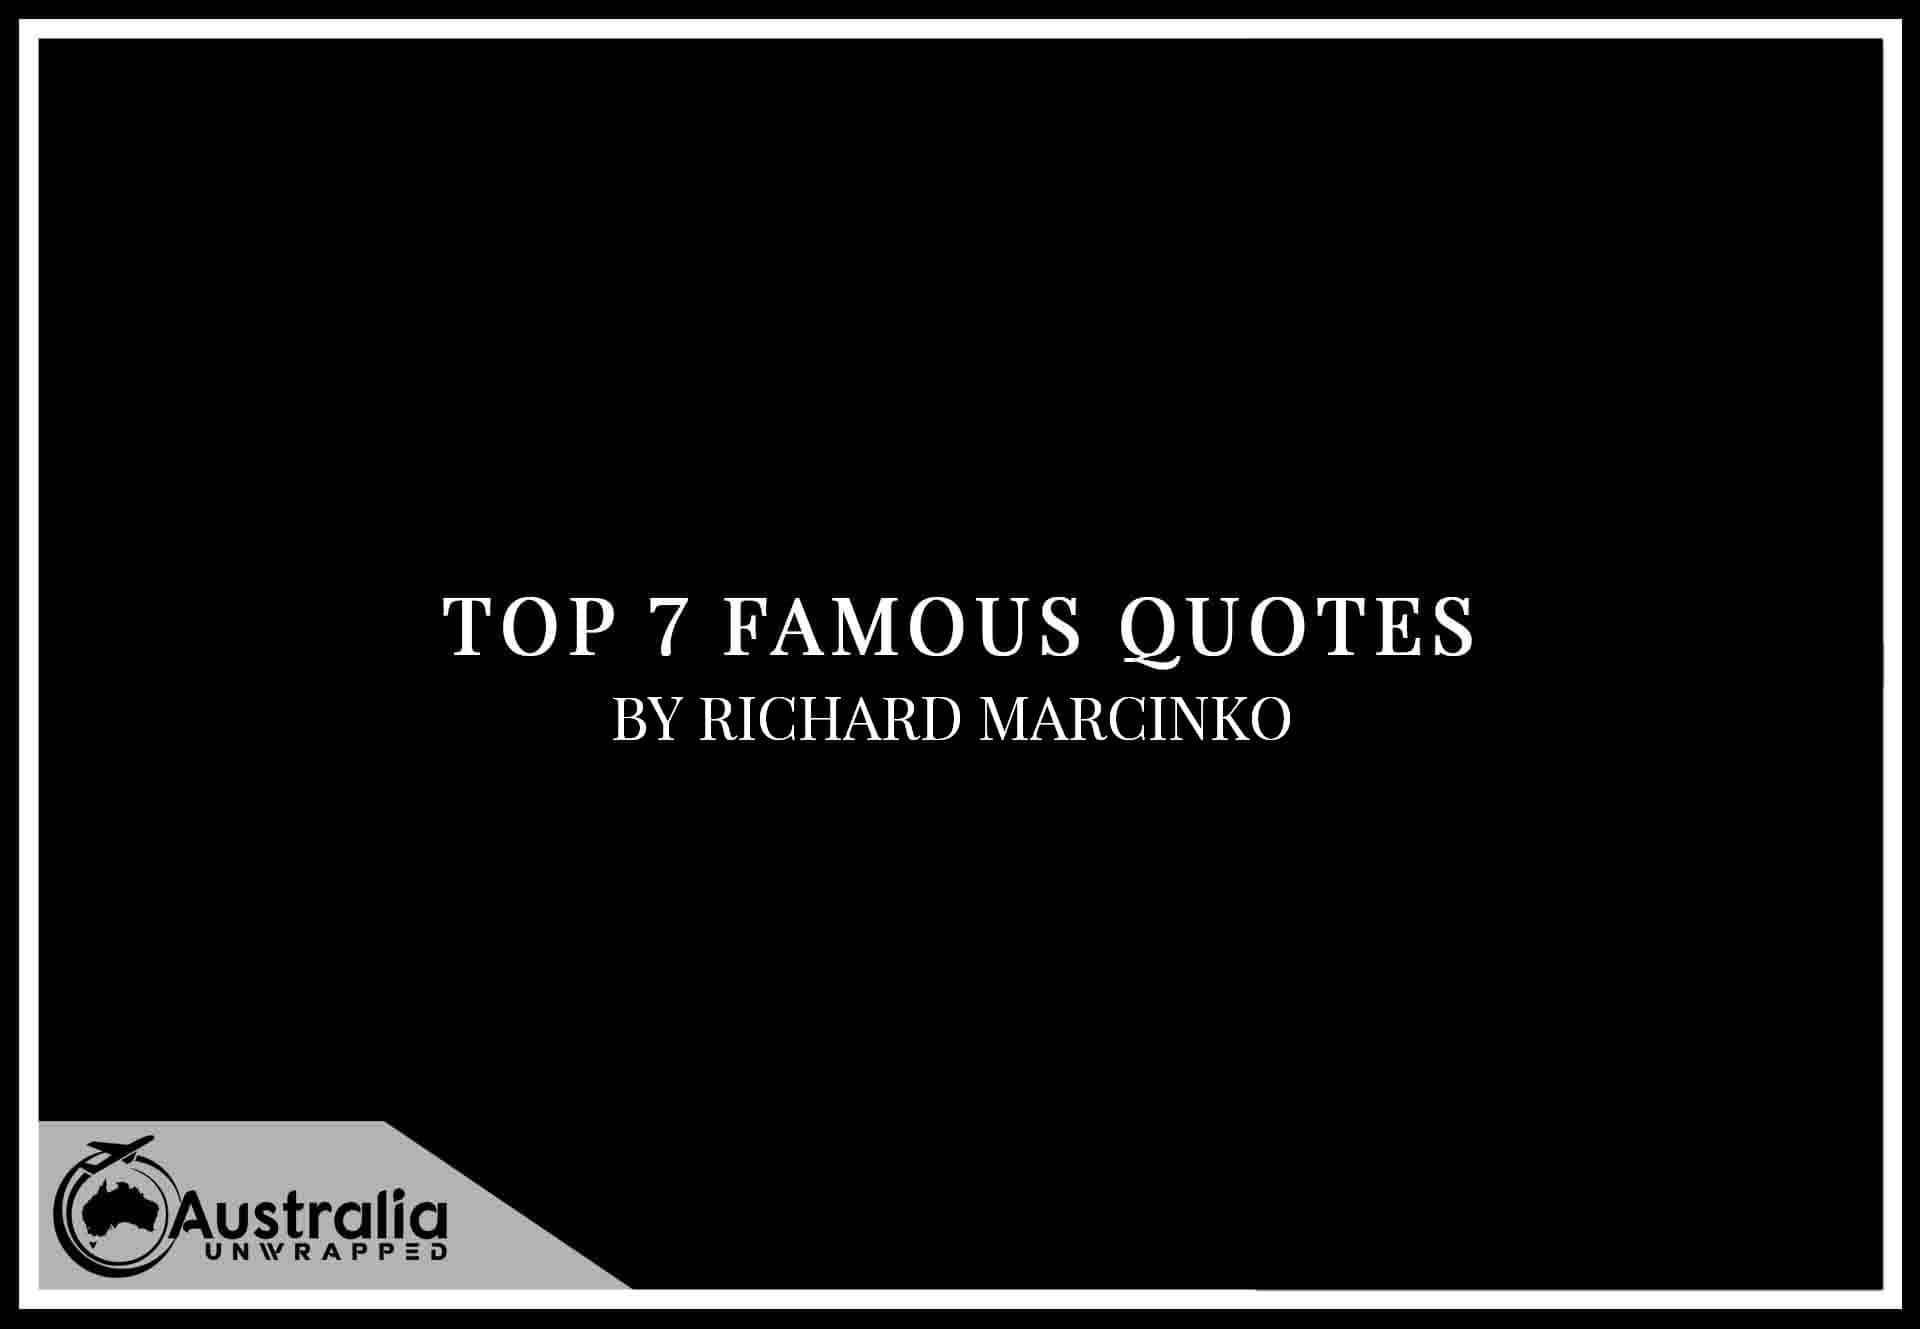 Top 7 Famous Quotes by Author Richard Marcinko